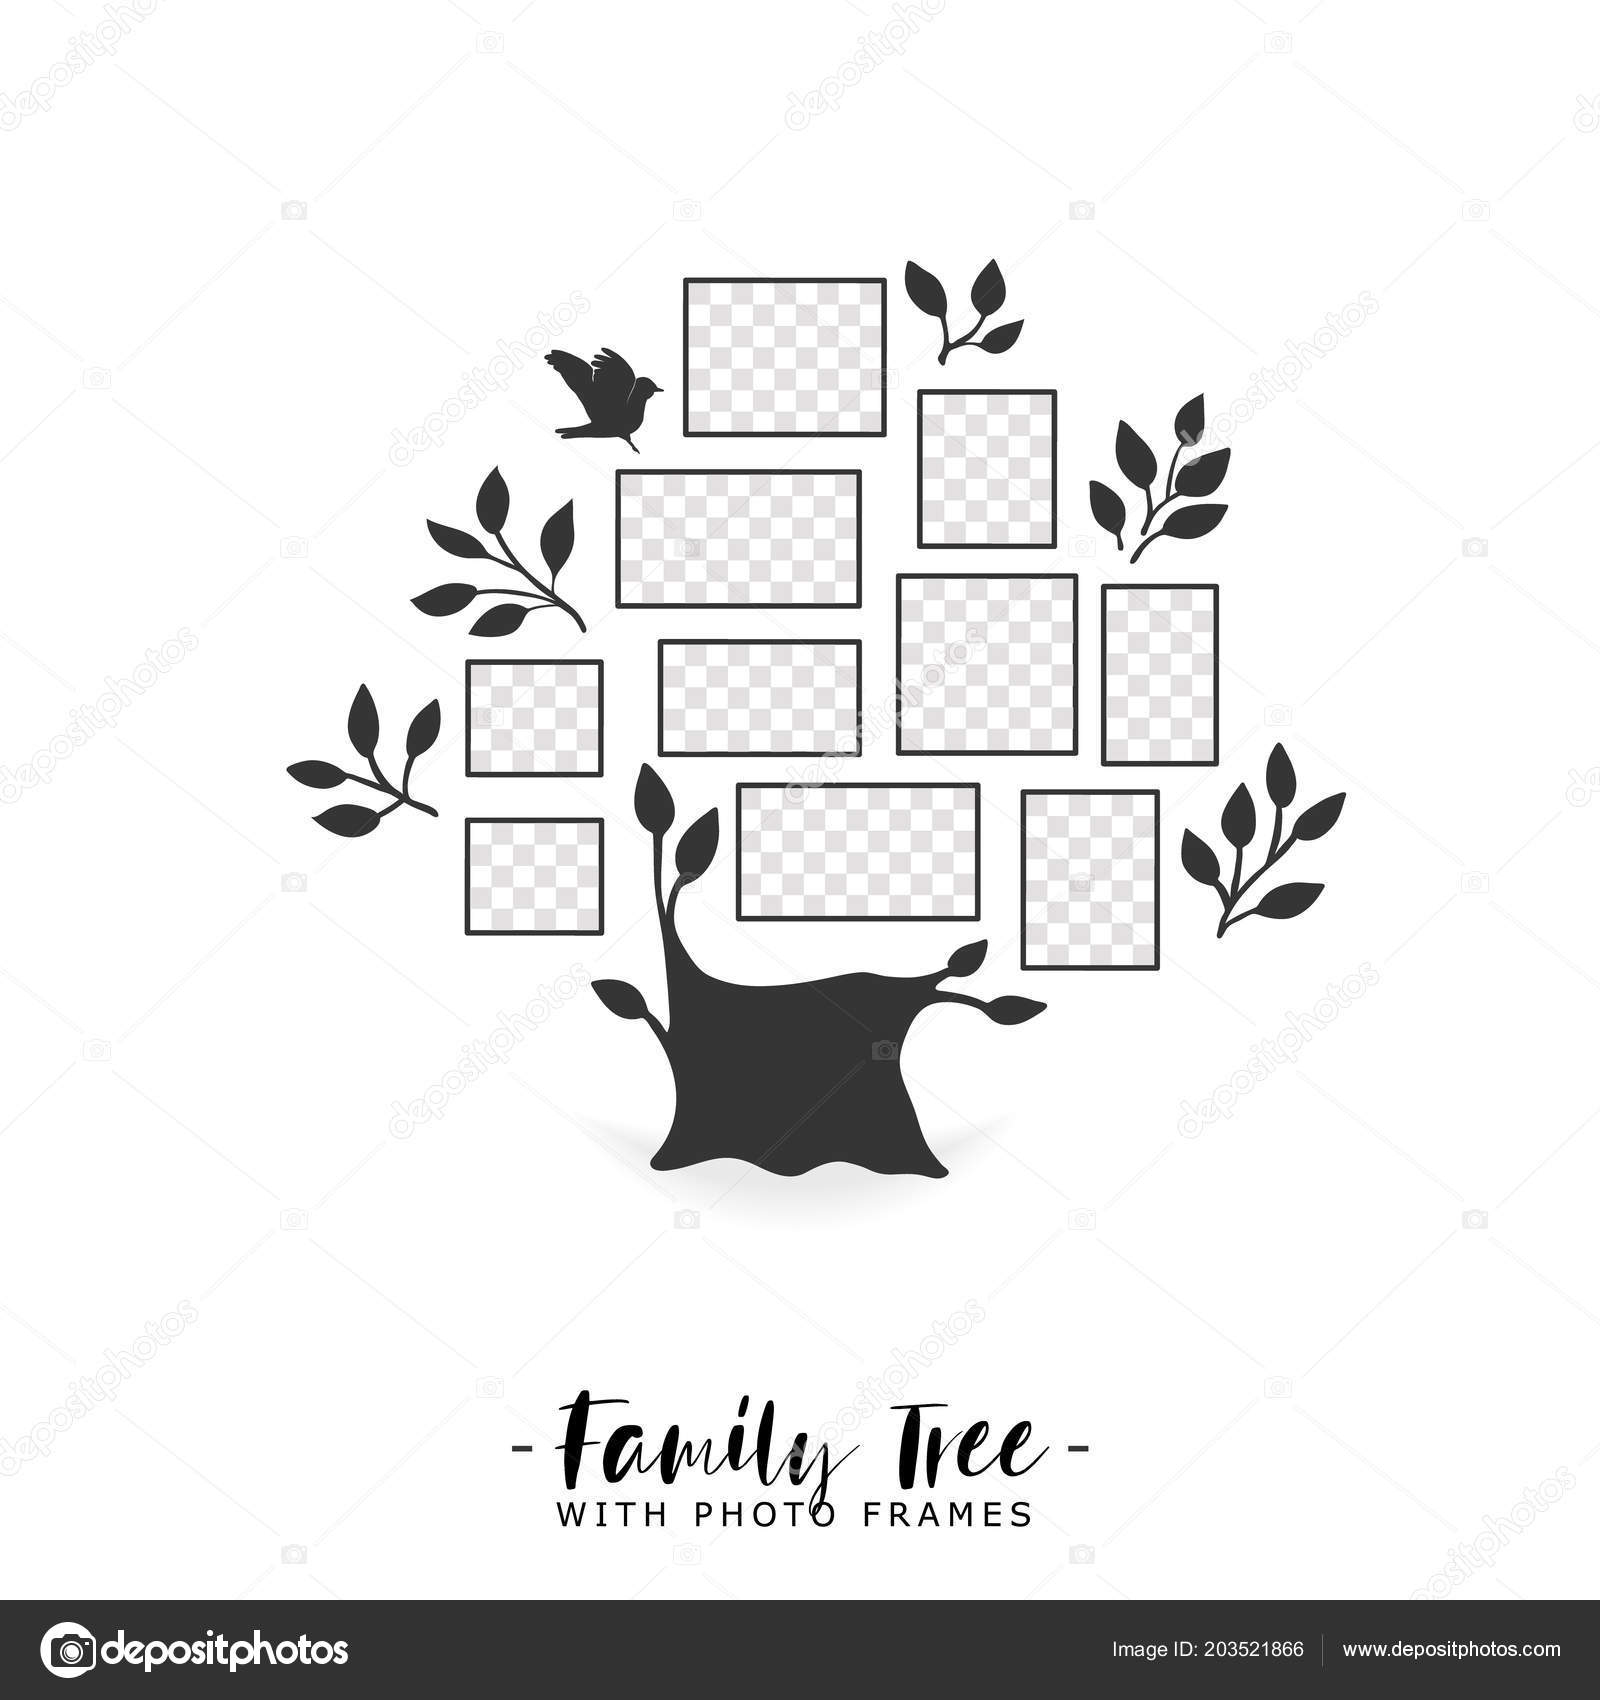 Family Tree With Photo Frames Stock Vector Liubou 203521866